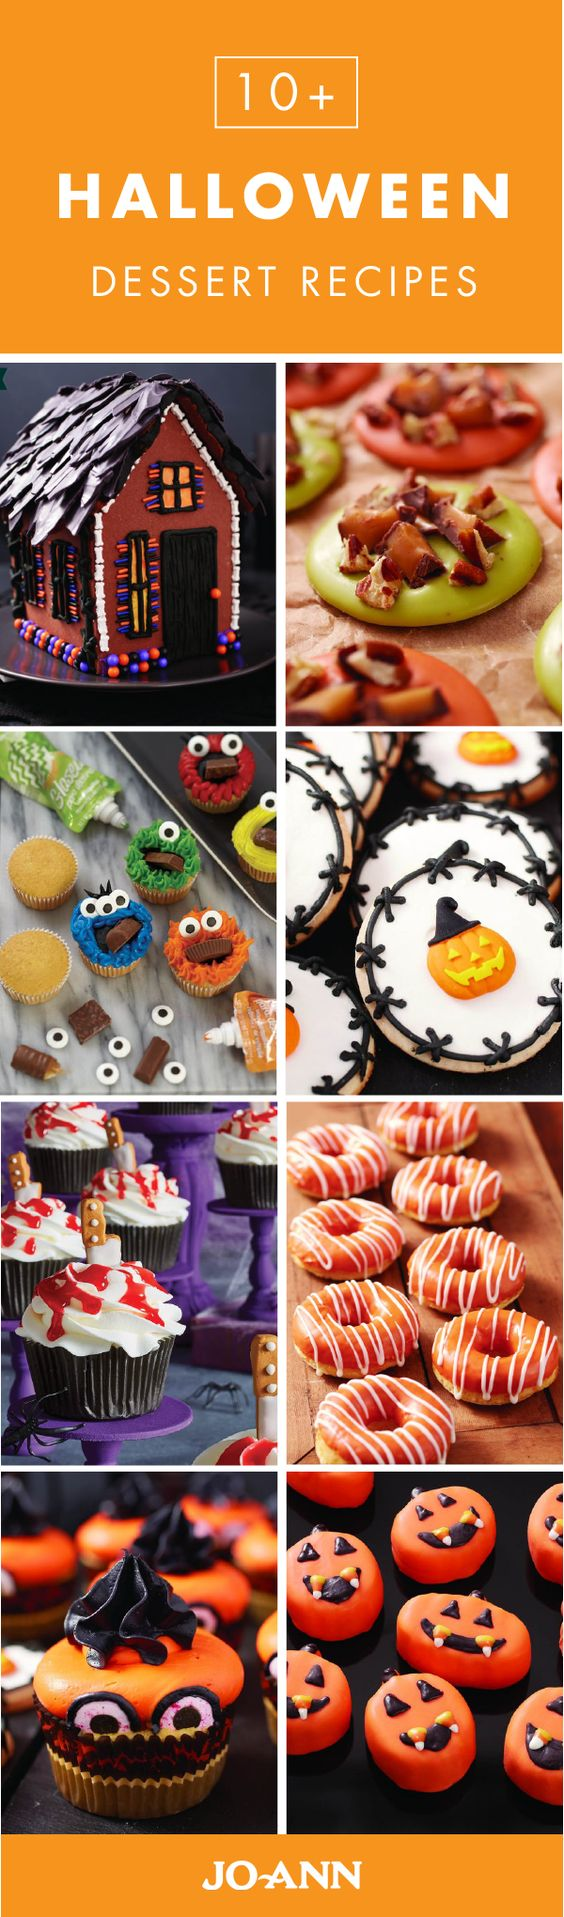 Gingerbread houses, Pumpkin pies and Gingerbread on Pinterest